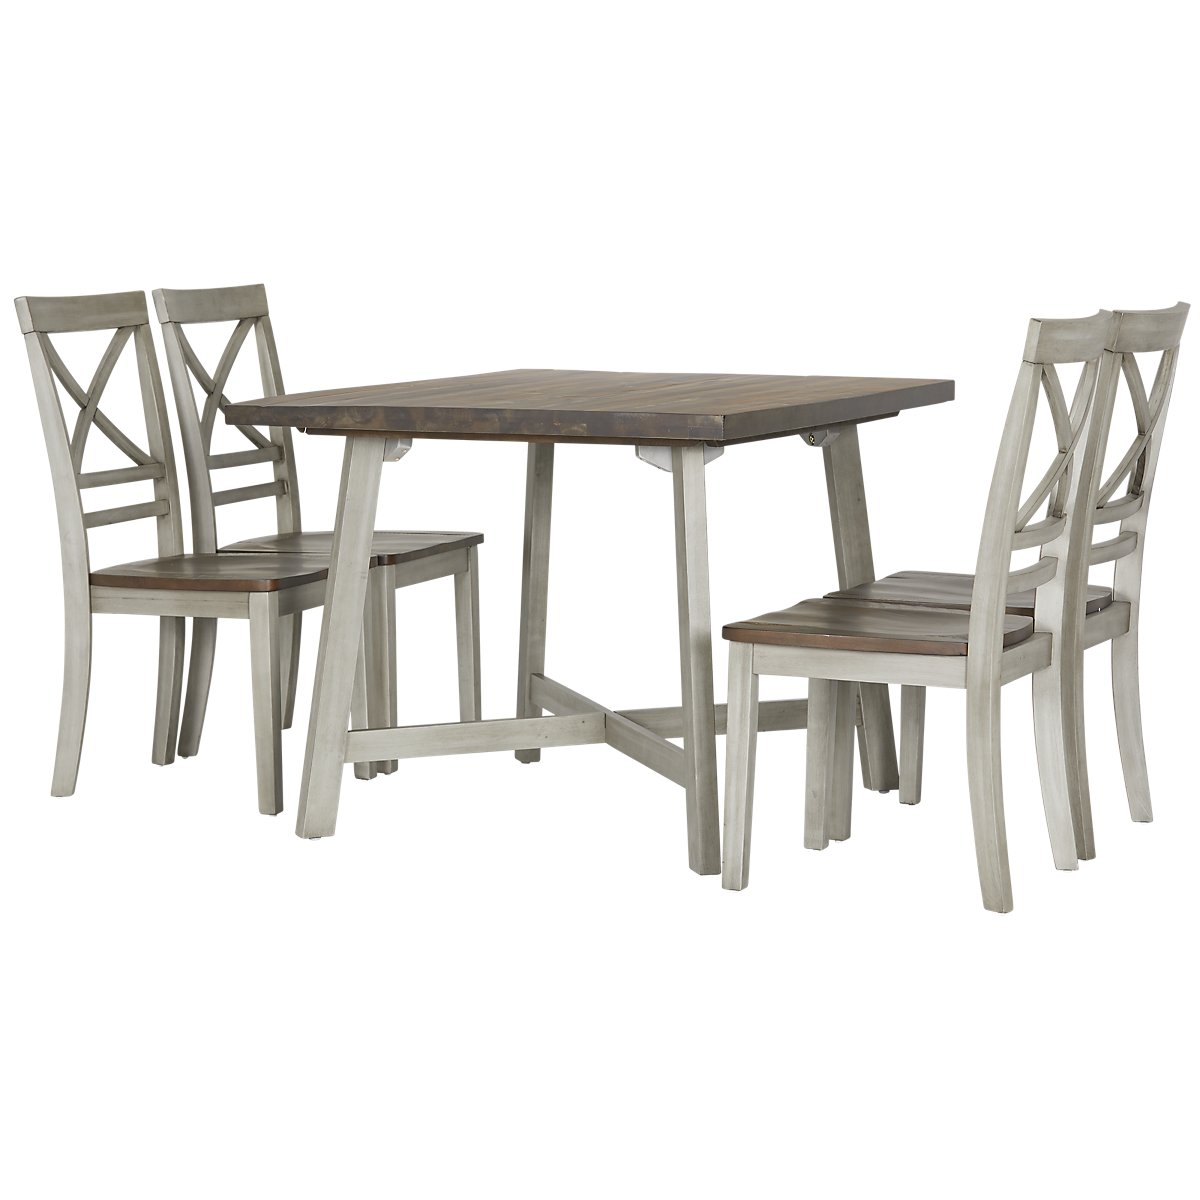 0e76b15b5479 Fairhaven Gray Wood Table & 4 Chairs   Dining Room - Dining Sets   City  Furniture